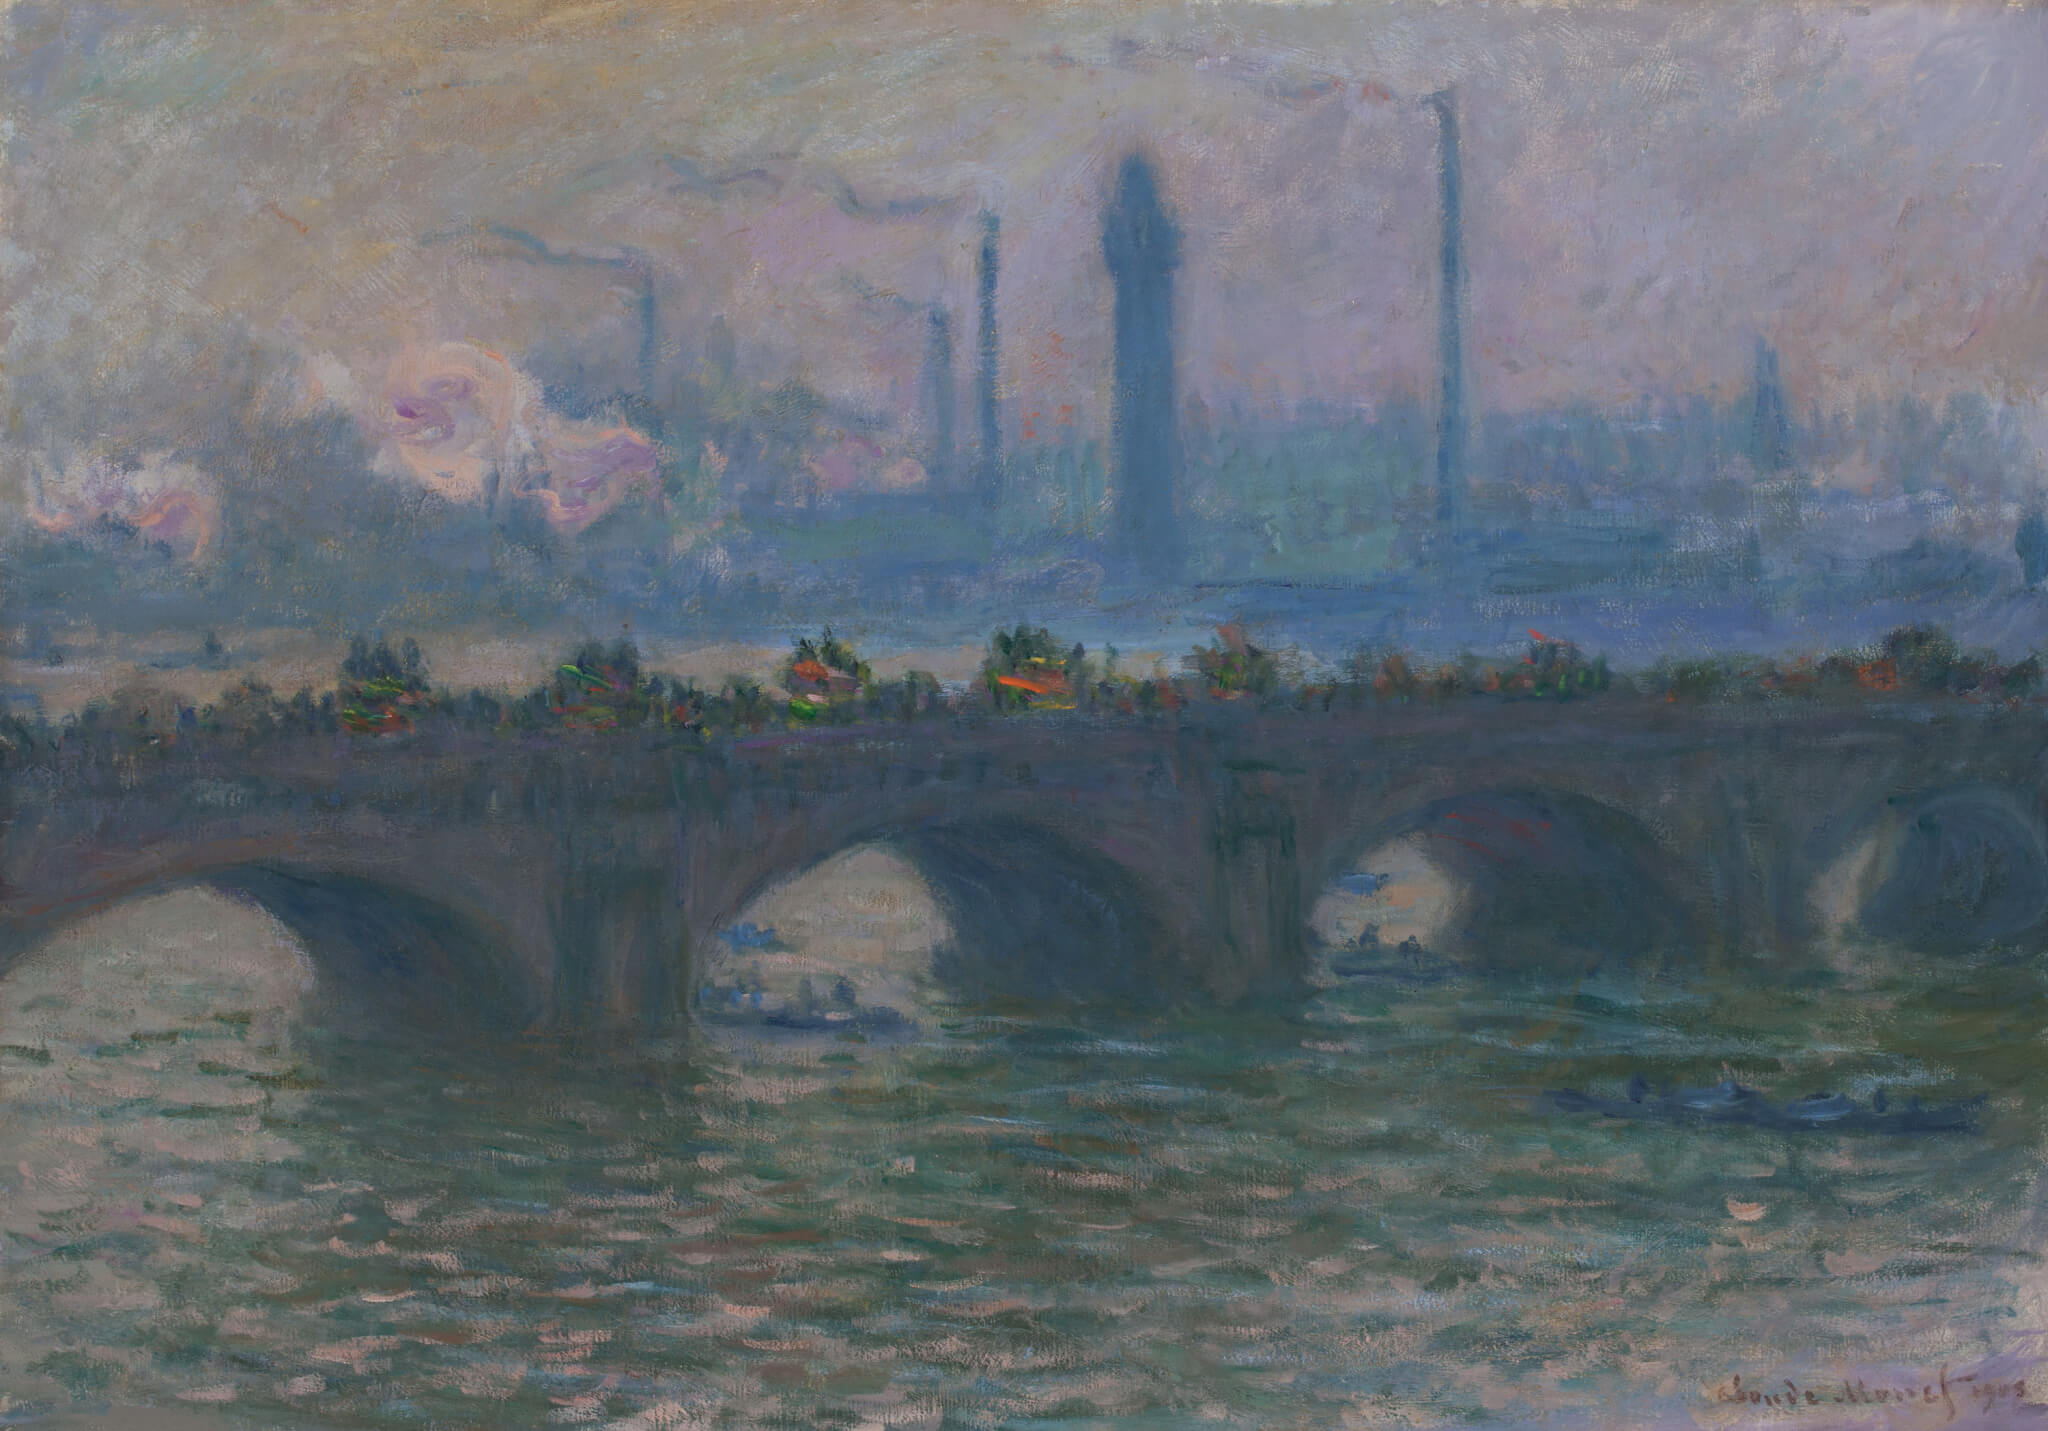 """Claude Monet, French, 1840-1926, """"Waterloo Bridge,"""" 1903, oil on canvas, Worcester Art Museum collection, Museum Purchase, 1910.37. Photograph courtesy of the Worcester Art Museum."""